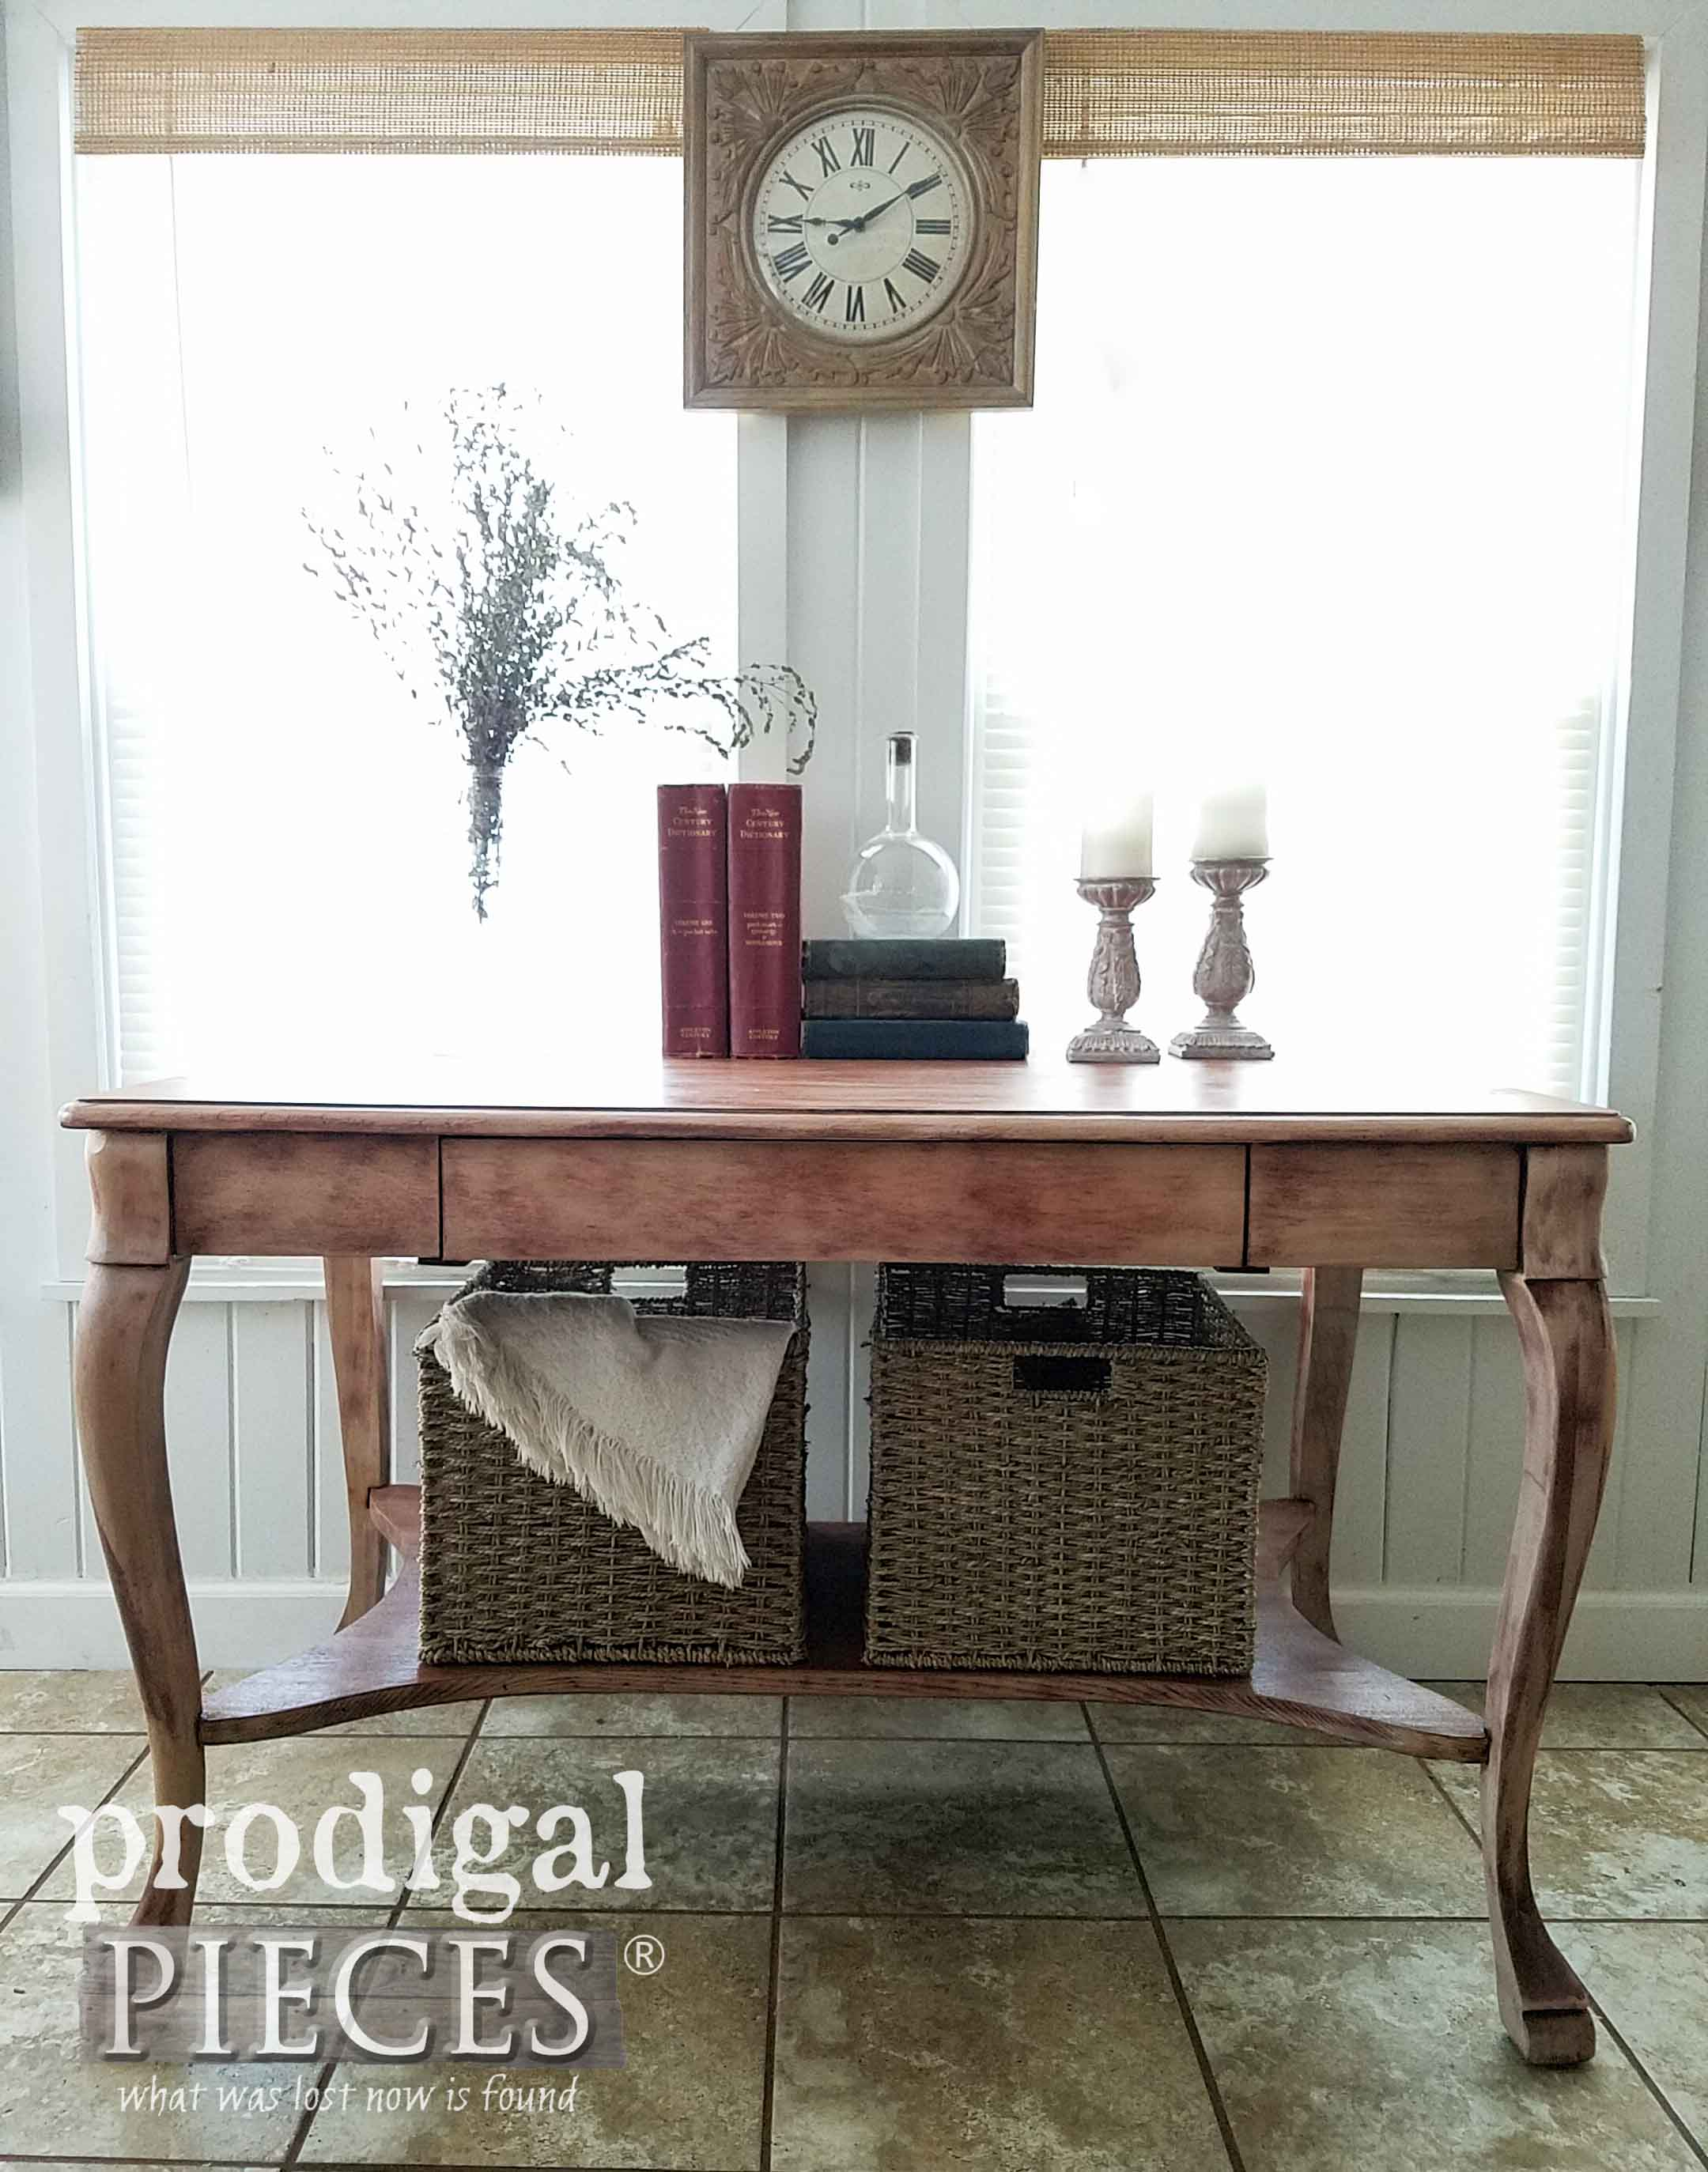 Gorgeous Lines in this Rustic Style Antique Library Table by Larkin Company and refinished by Larissa of Prodigal Pieces. See the details at prodigalpieces.com